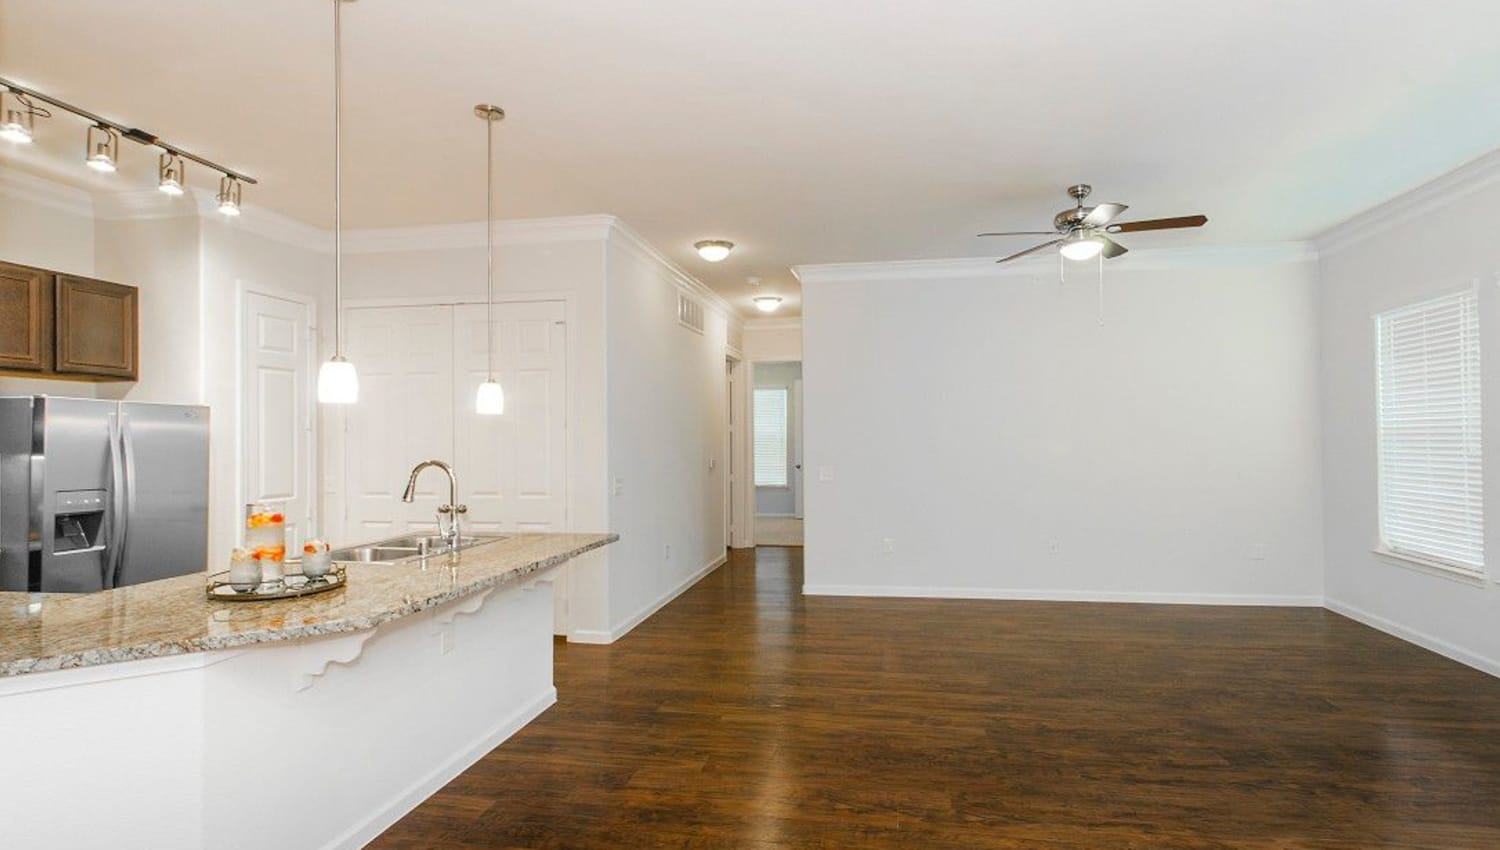 Ceiling fan and hardwood flooring in the living areas and kitchen in a model home at Olympus Woodbridge in Sachse, Texas